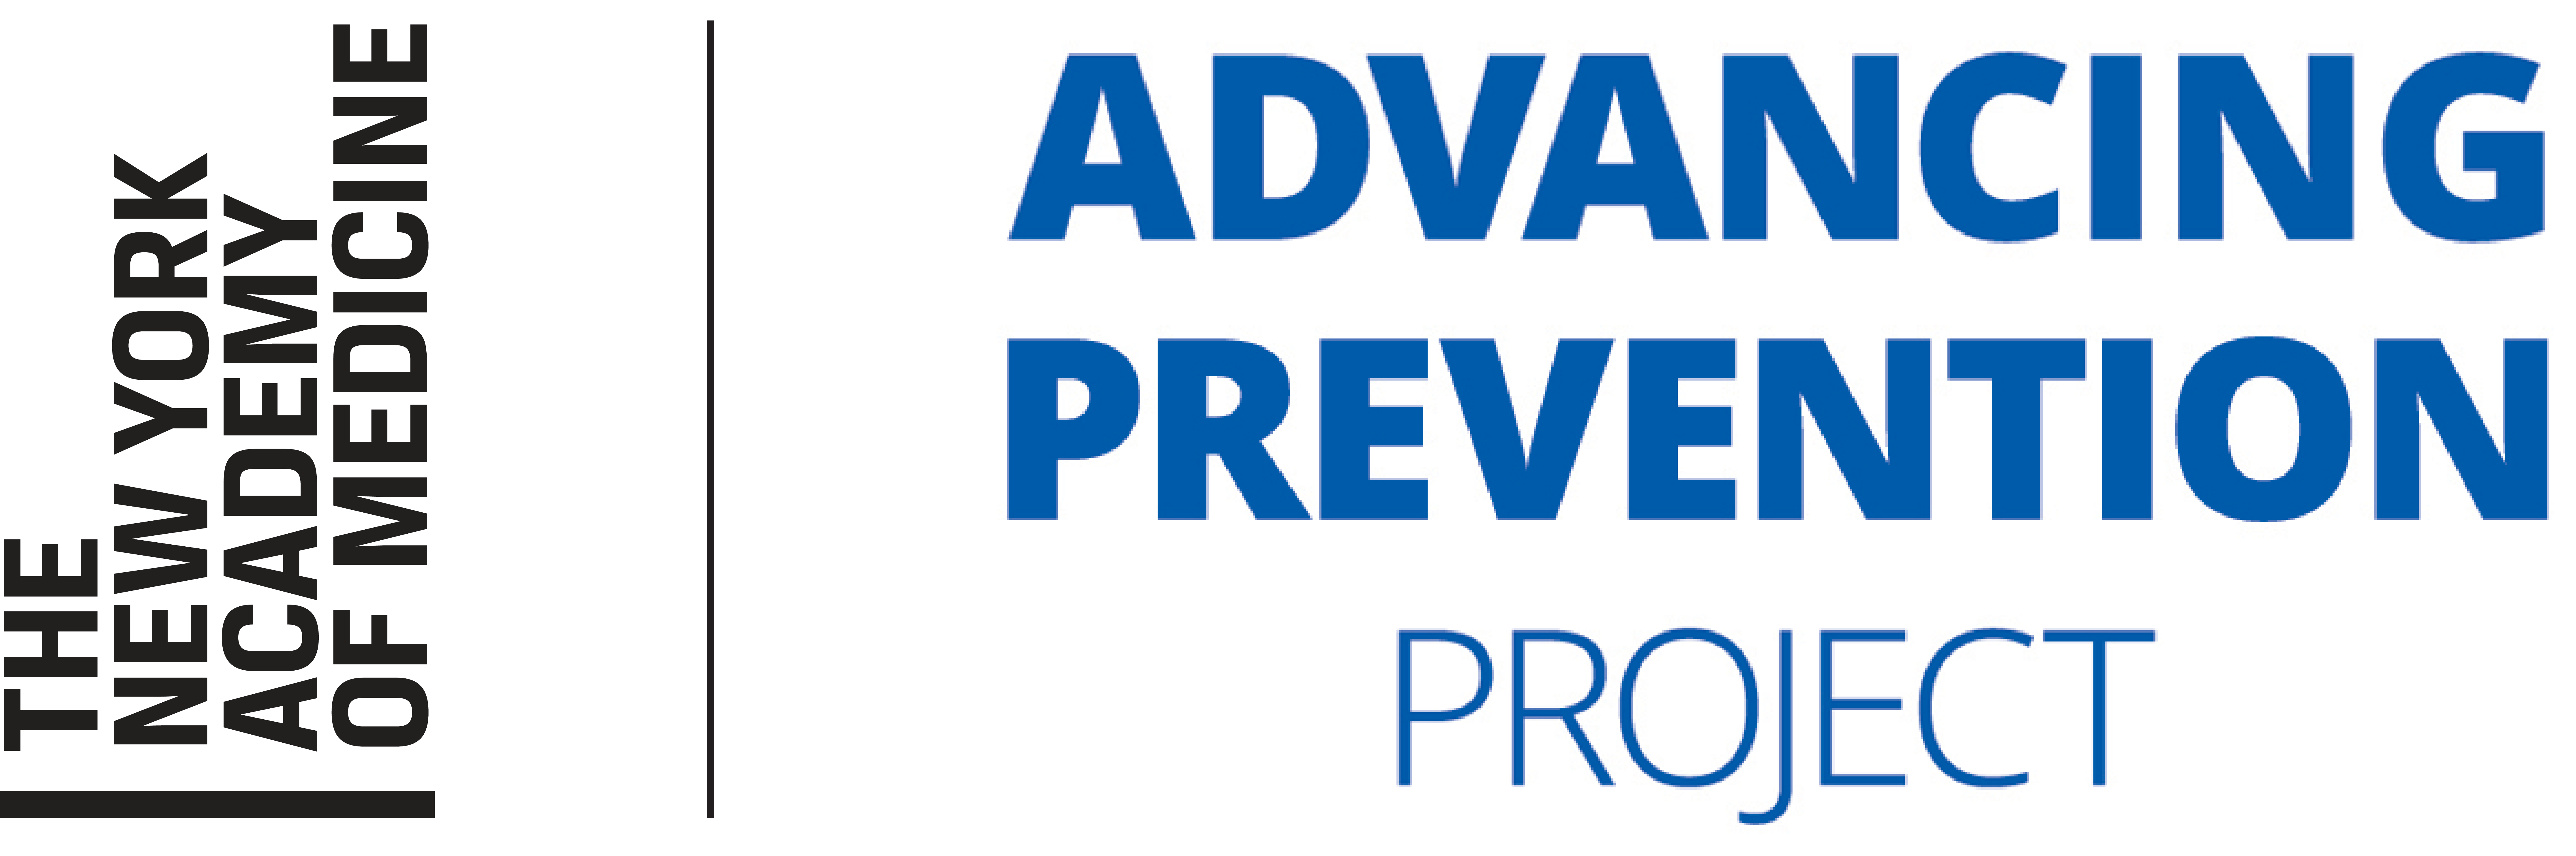 Advancing Prevention Project